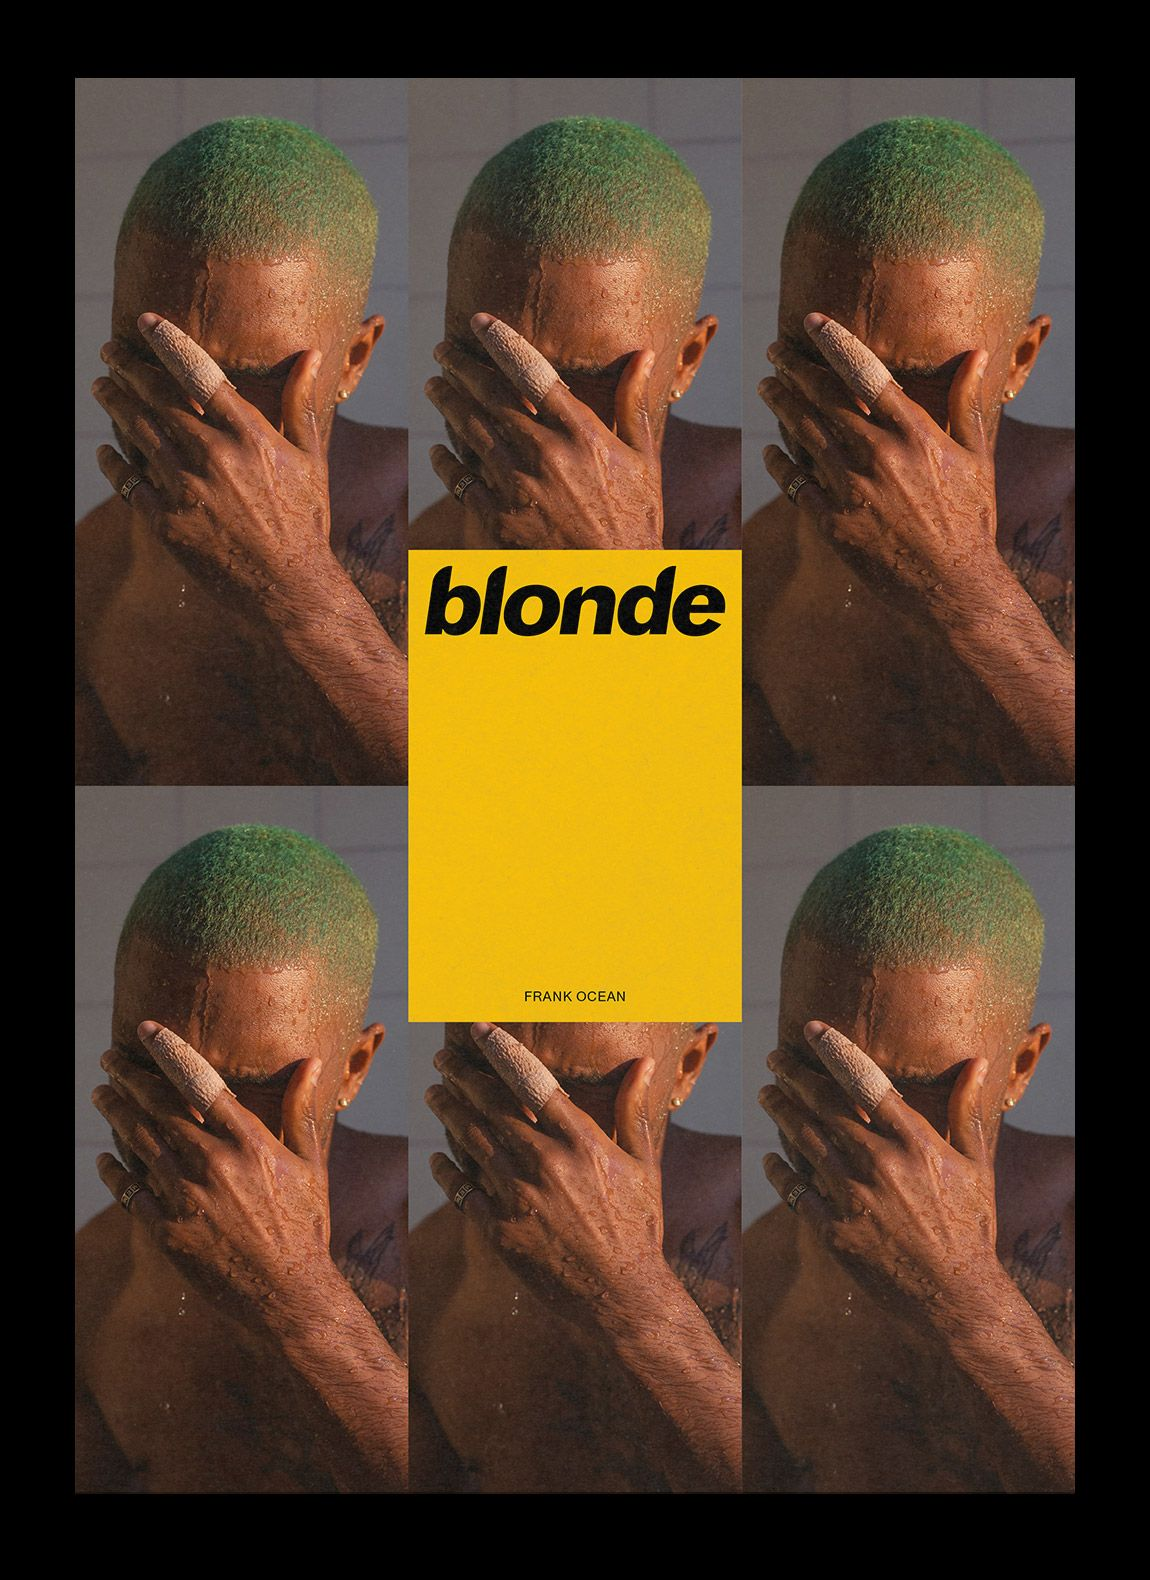 Frank Ocean Blonde Michel Egger Graphic Design for Frank